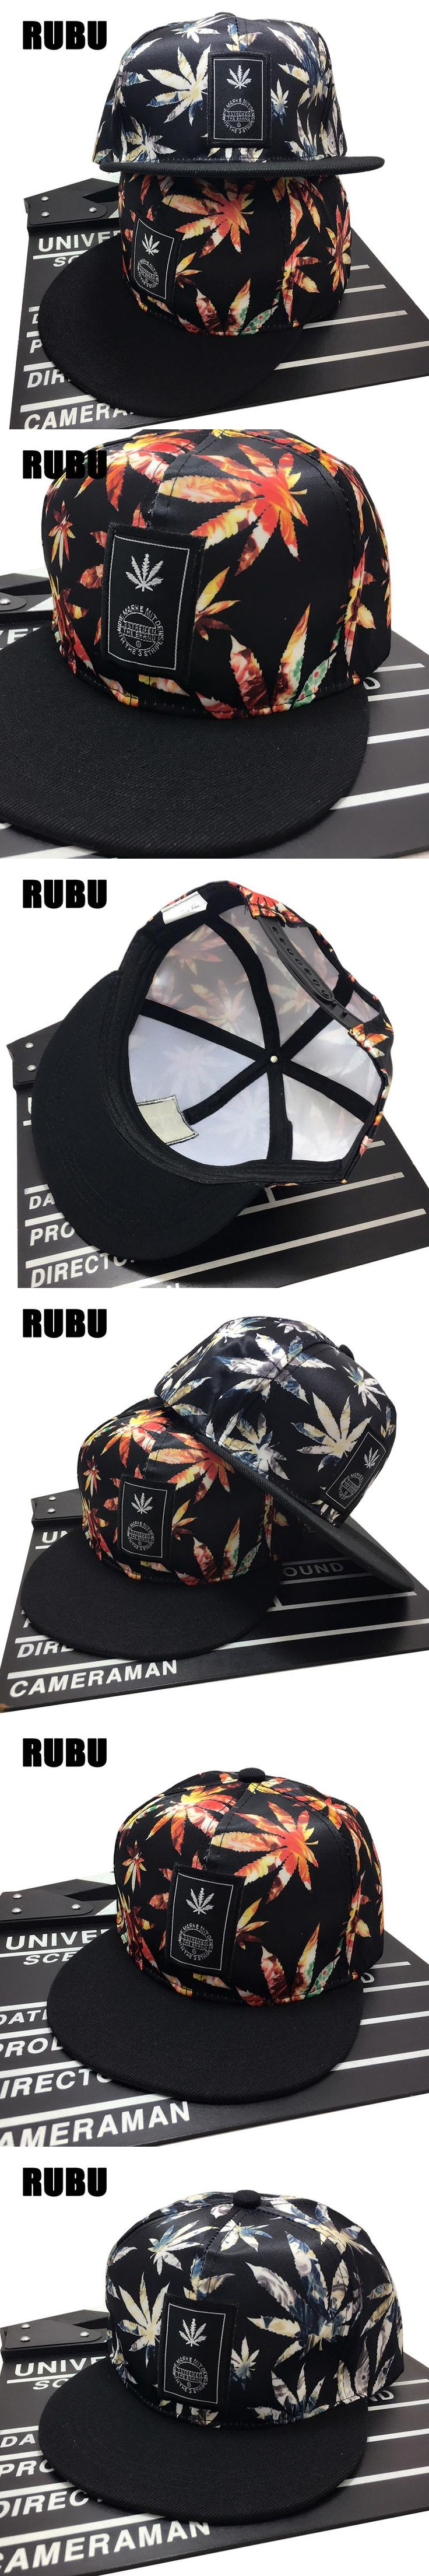 Gorra hats Fancy adult weeds leaves printing hip hop hats Embroidery decoration adult flat brim weed snapback caps for men women